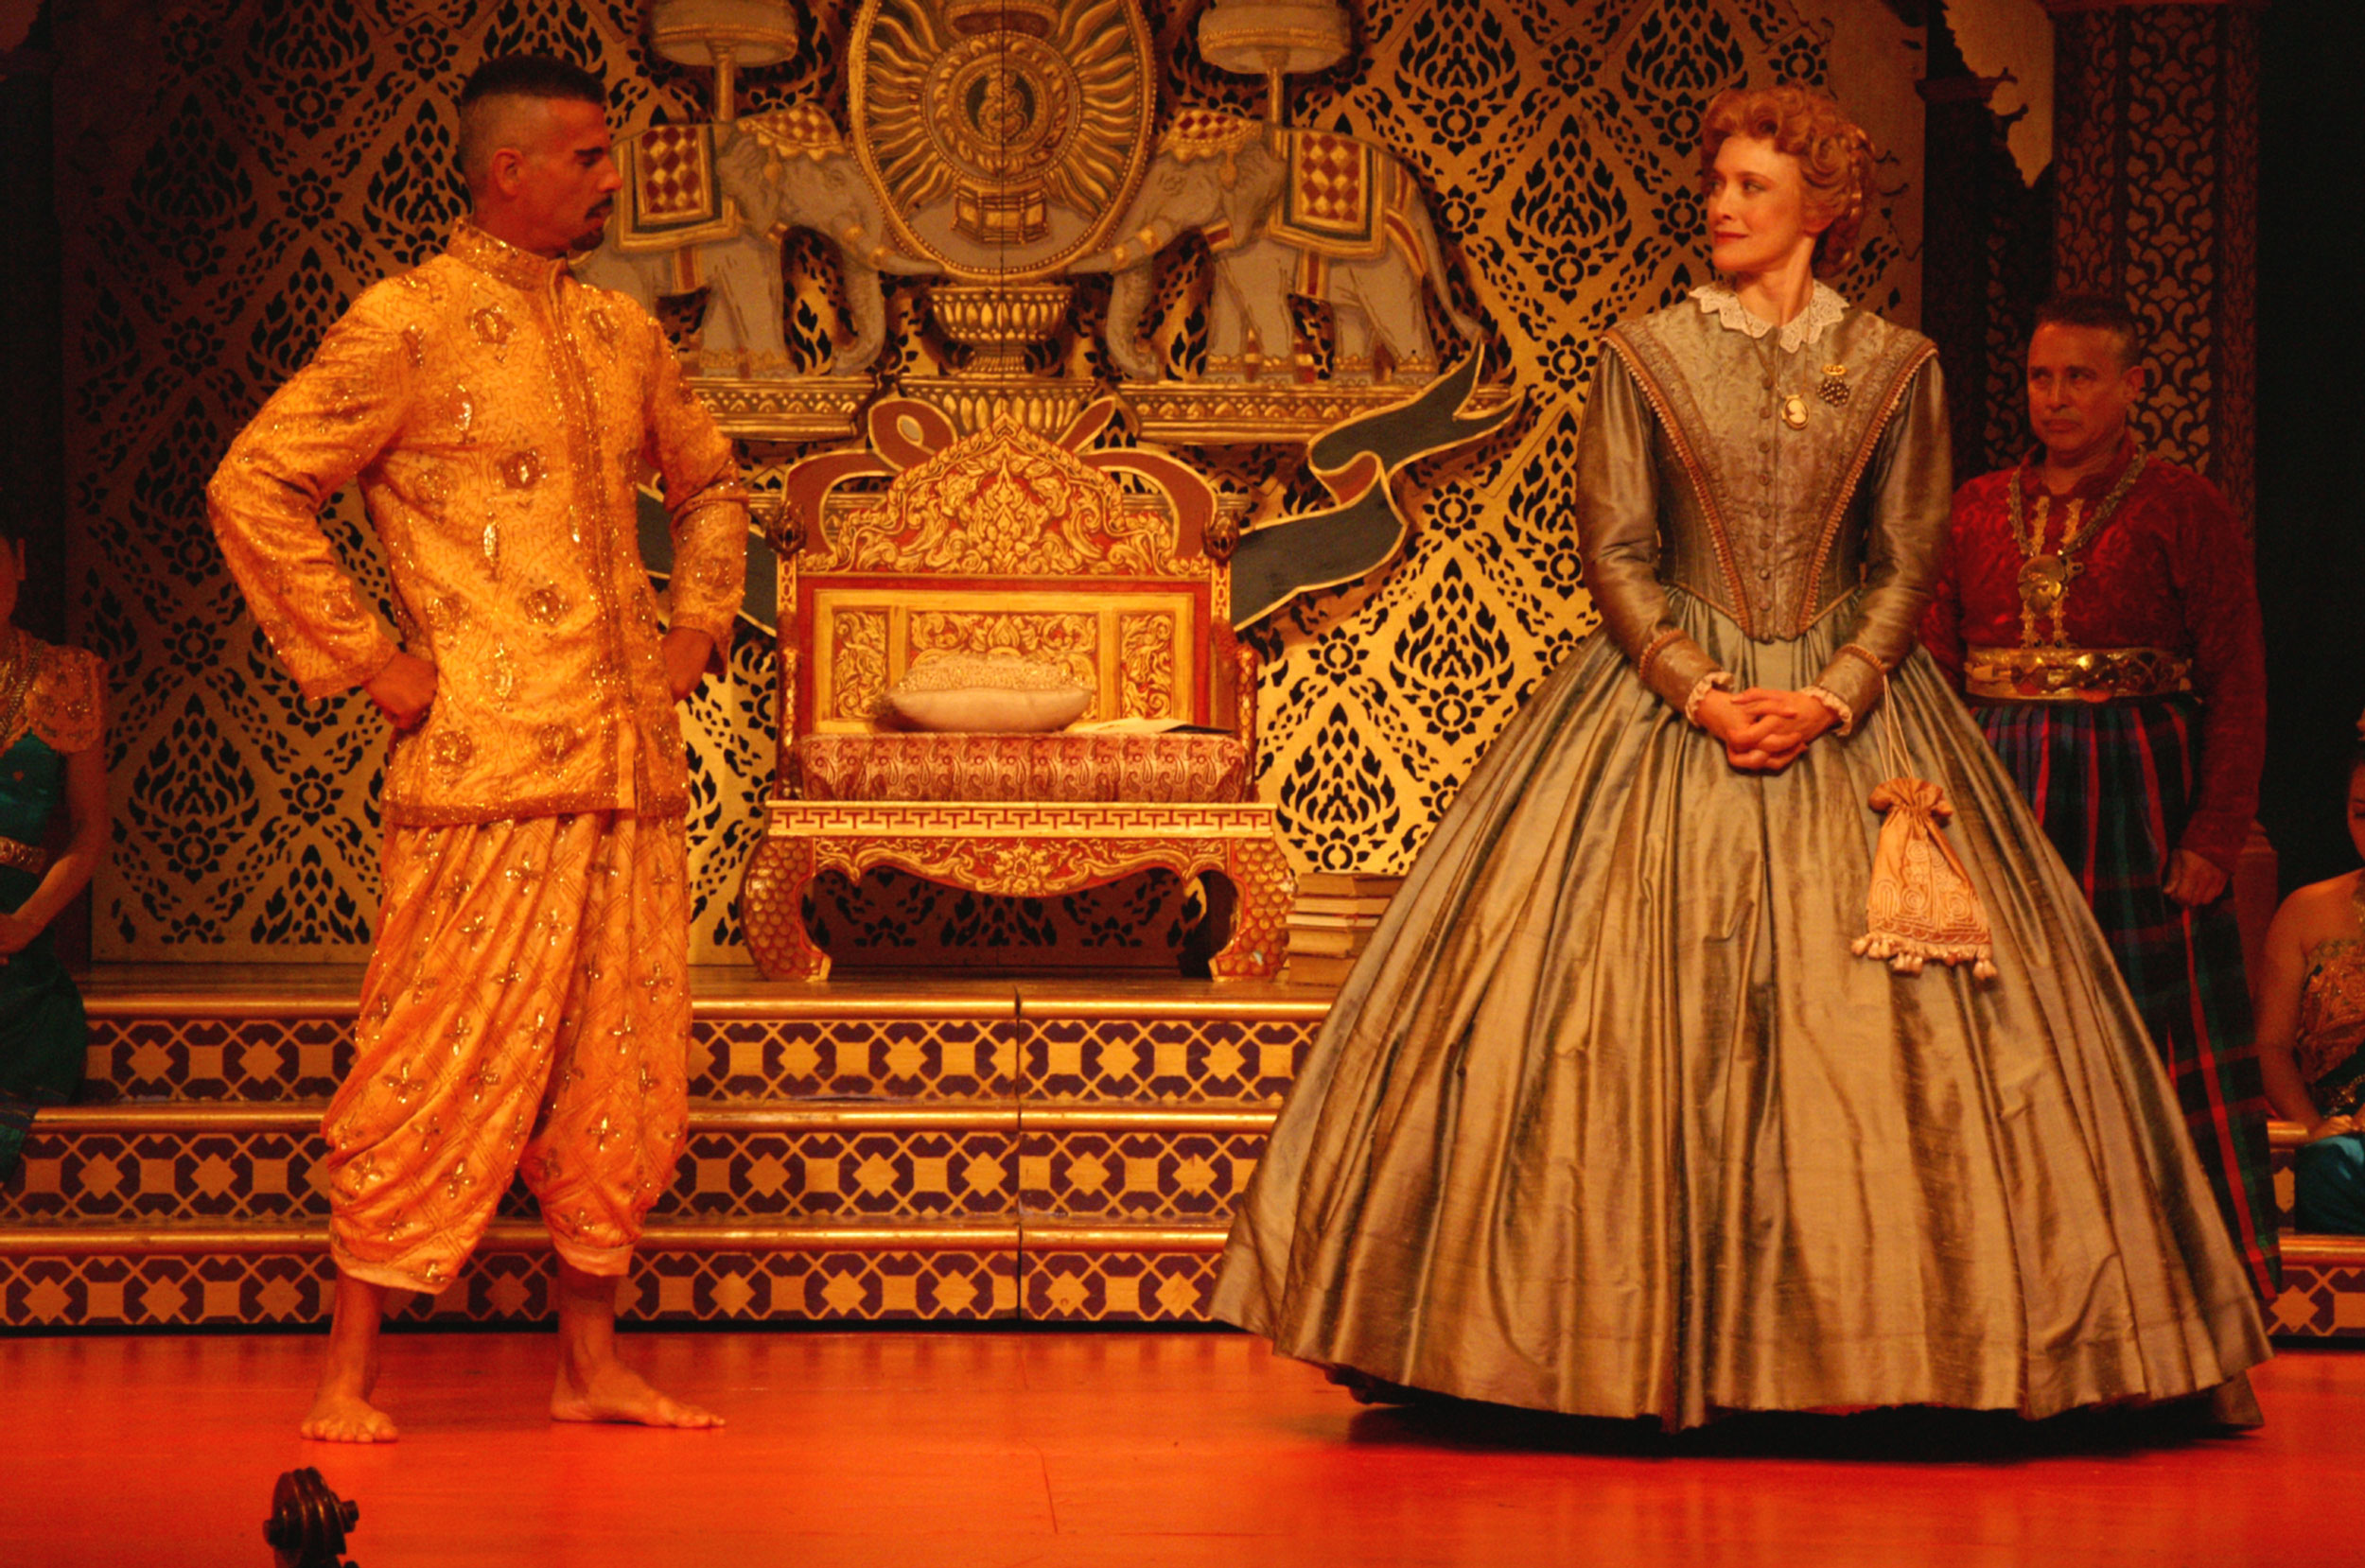 The-King-meets-Anna-upon-her-arrival-in-Siam.jpg